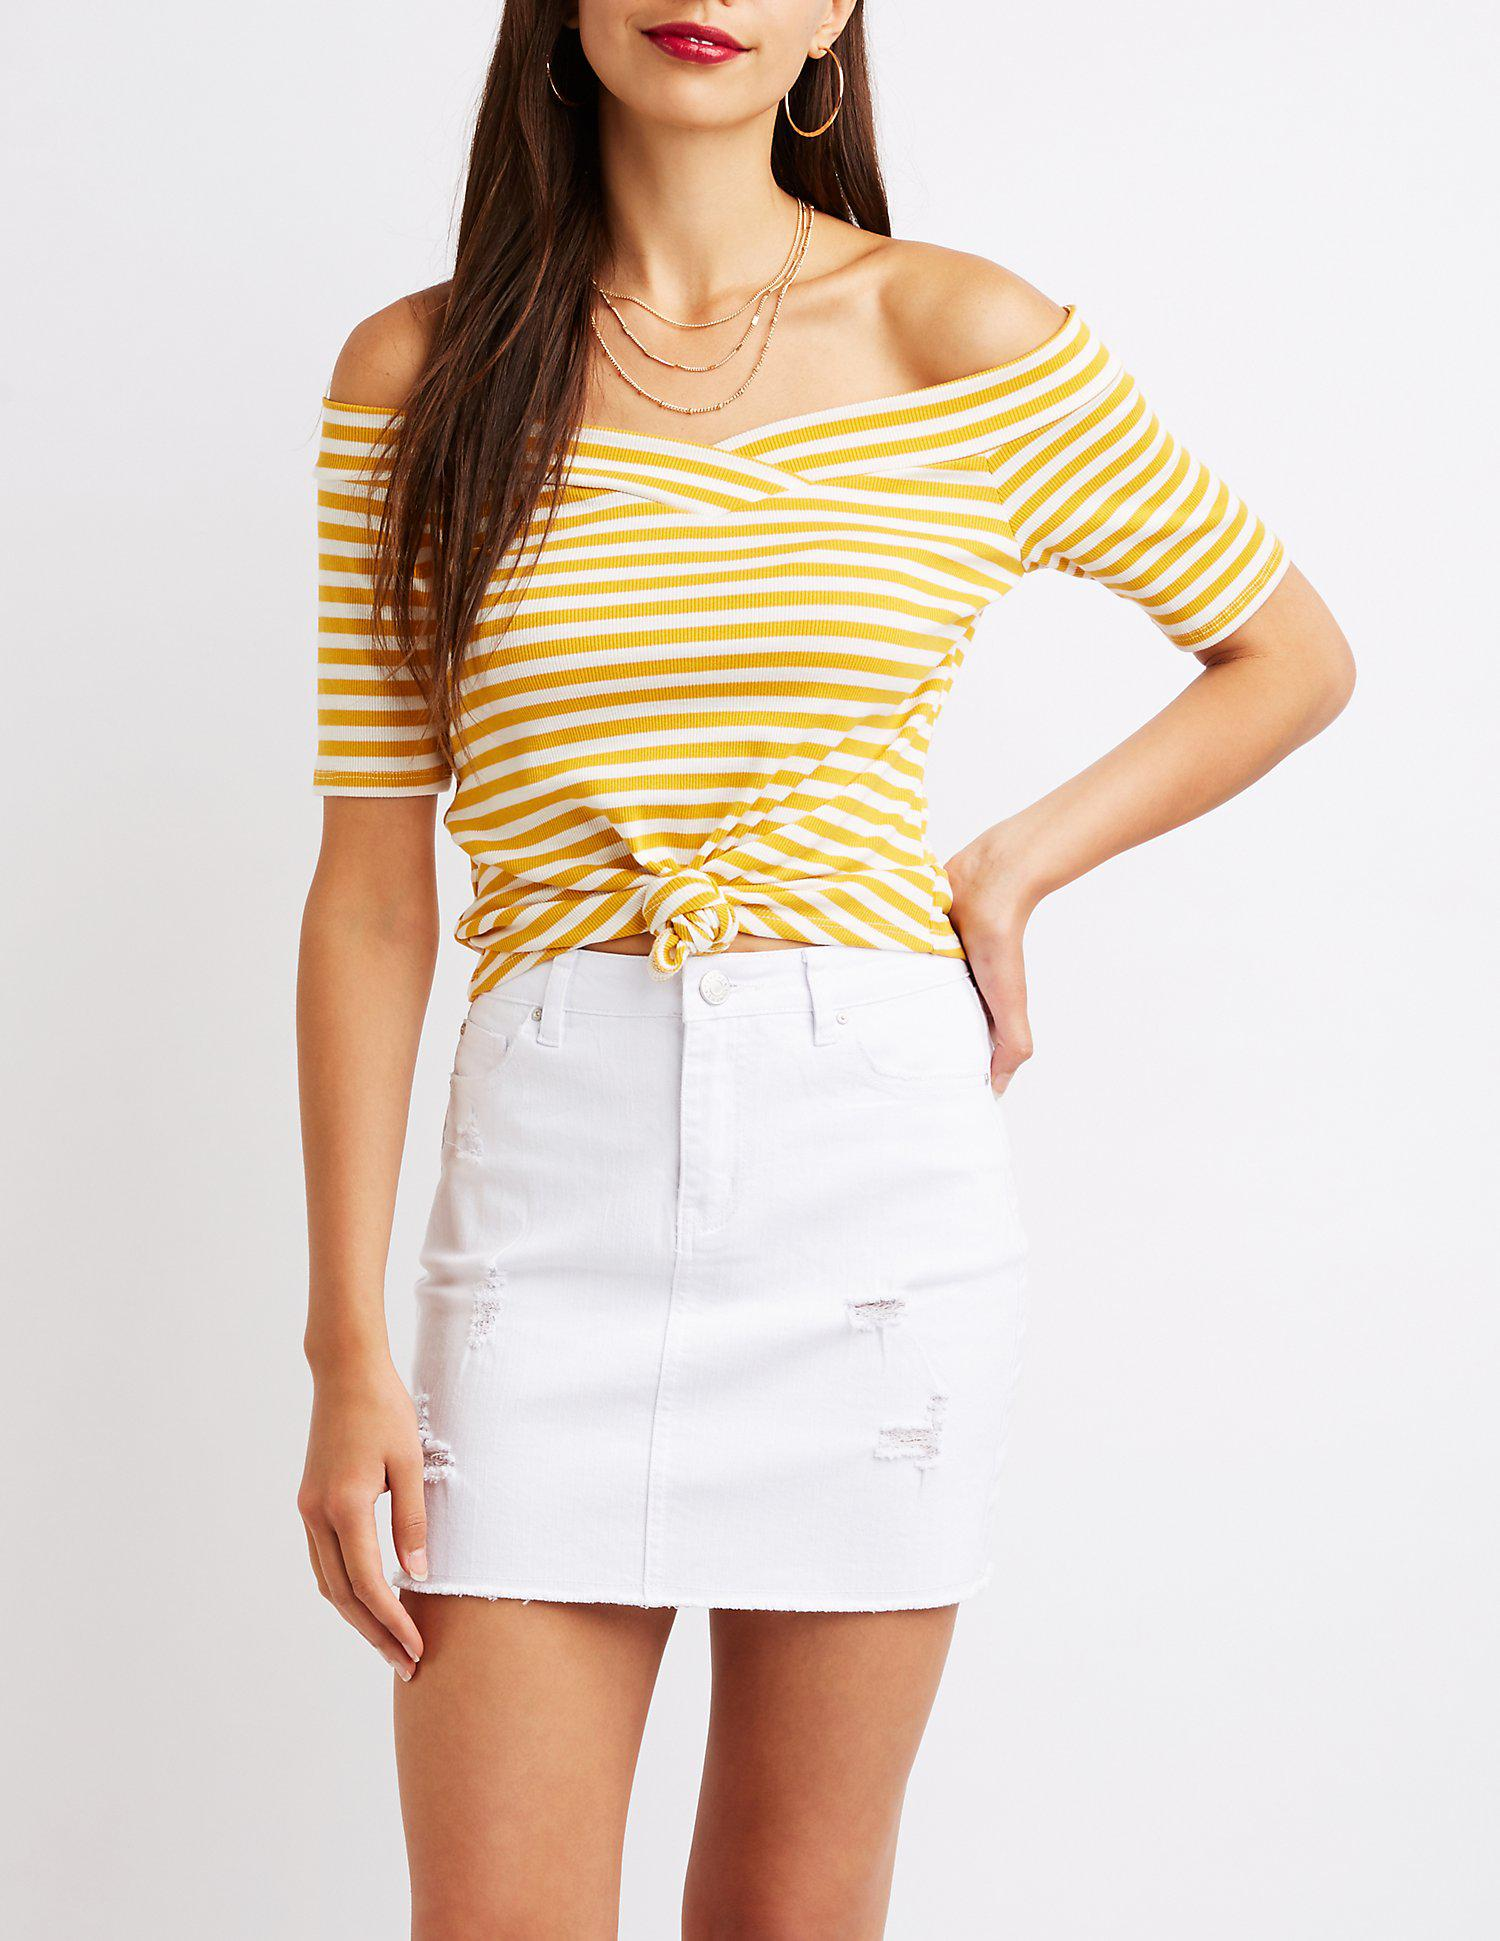 a80f46db54891c Lyst - Charlotte Russe Ribbed Off The Shoulder Top in Yellow - Save ...